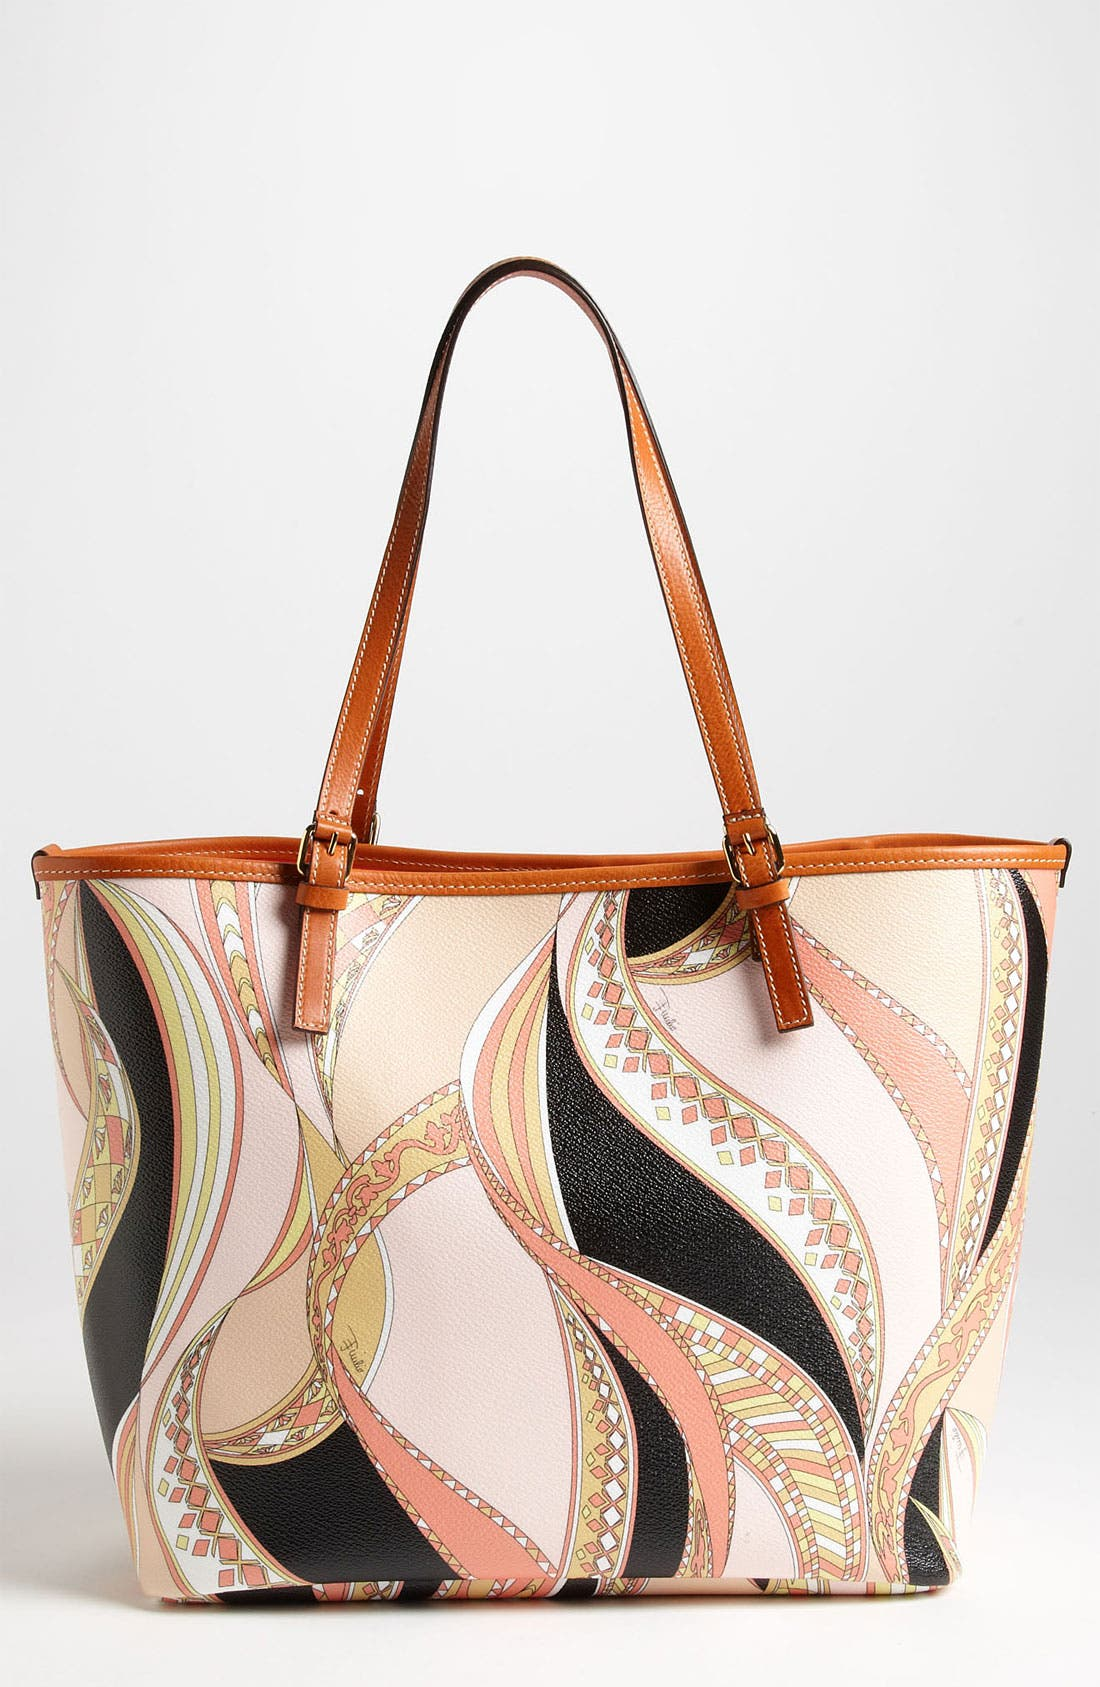 Main Image - Emilio Pucci 'Medium' Shopper